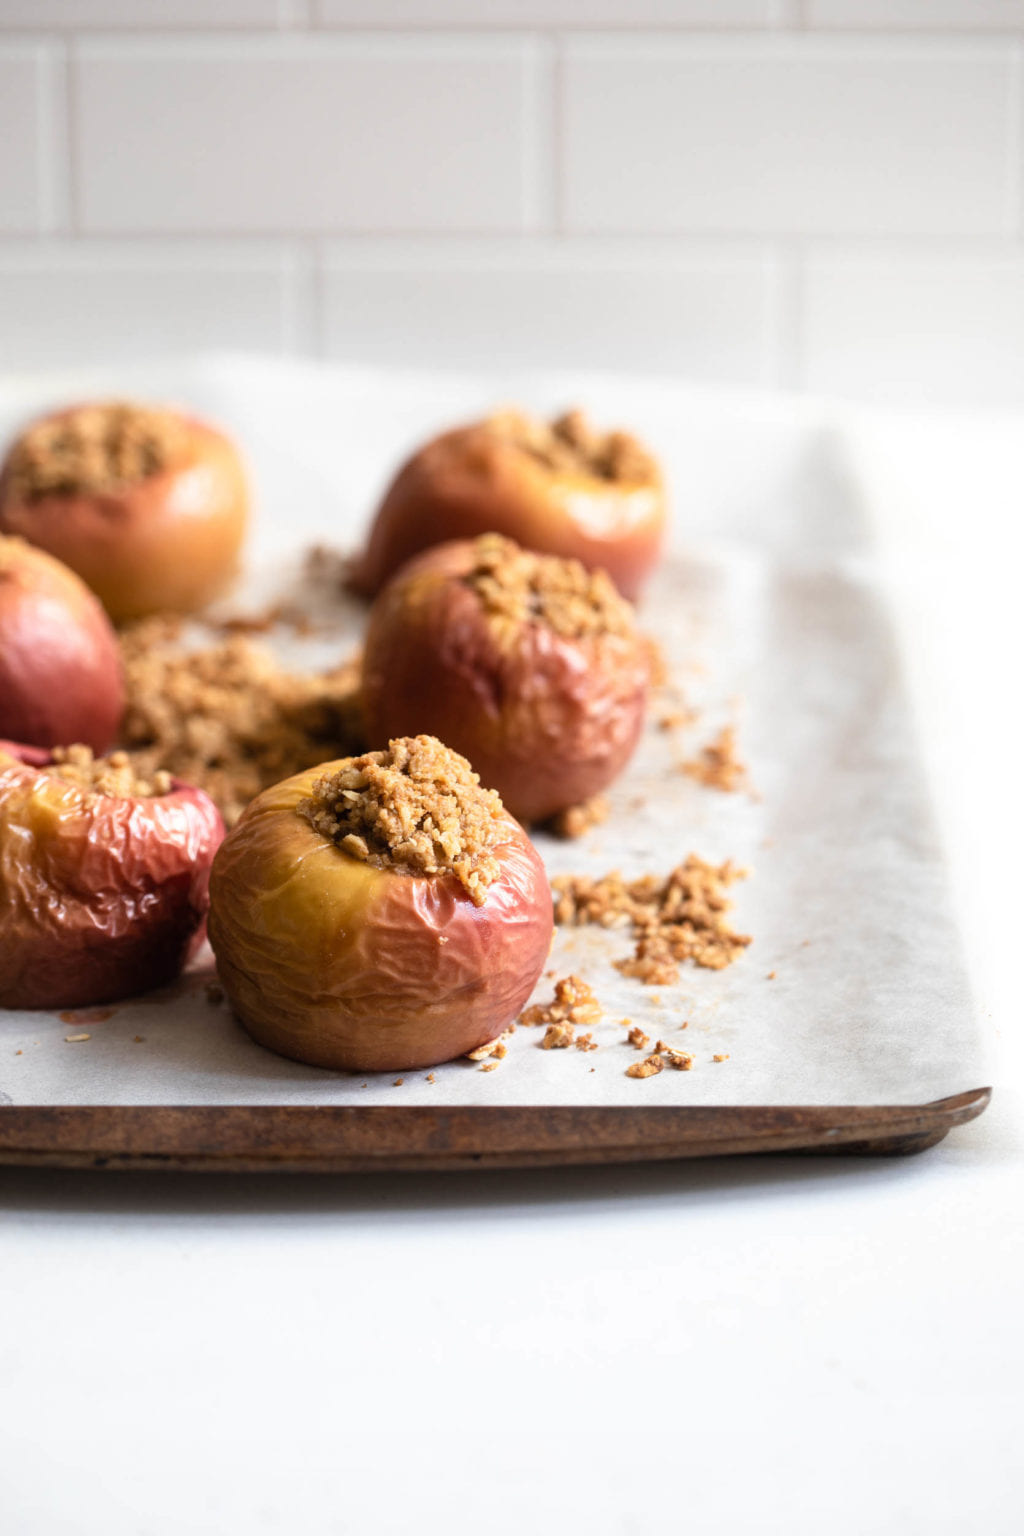 A baking sheet lined with parchment paper can hold six baked apples, and the parchment paper has crumbles of powdered sugar and butter.